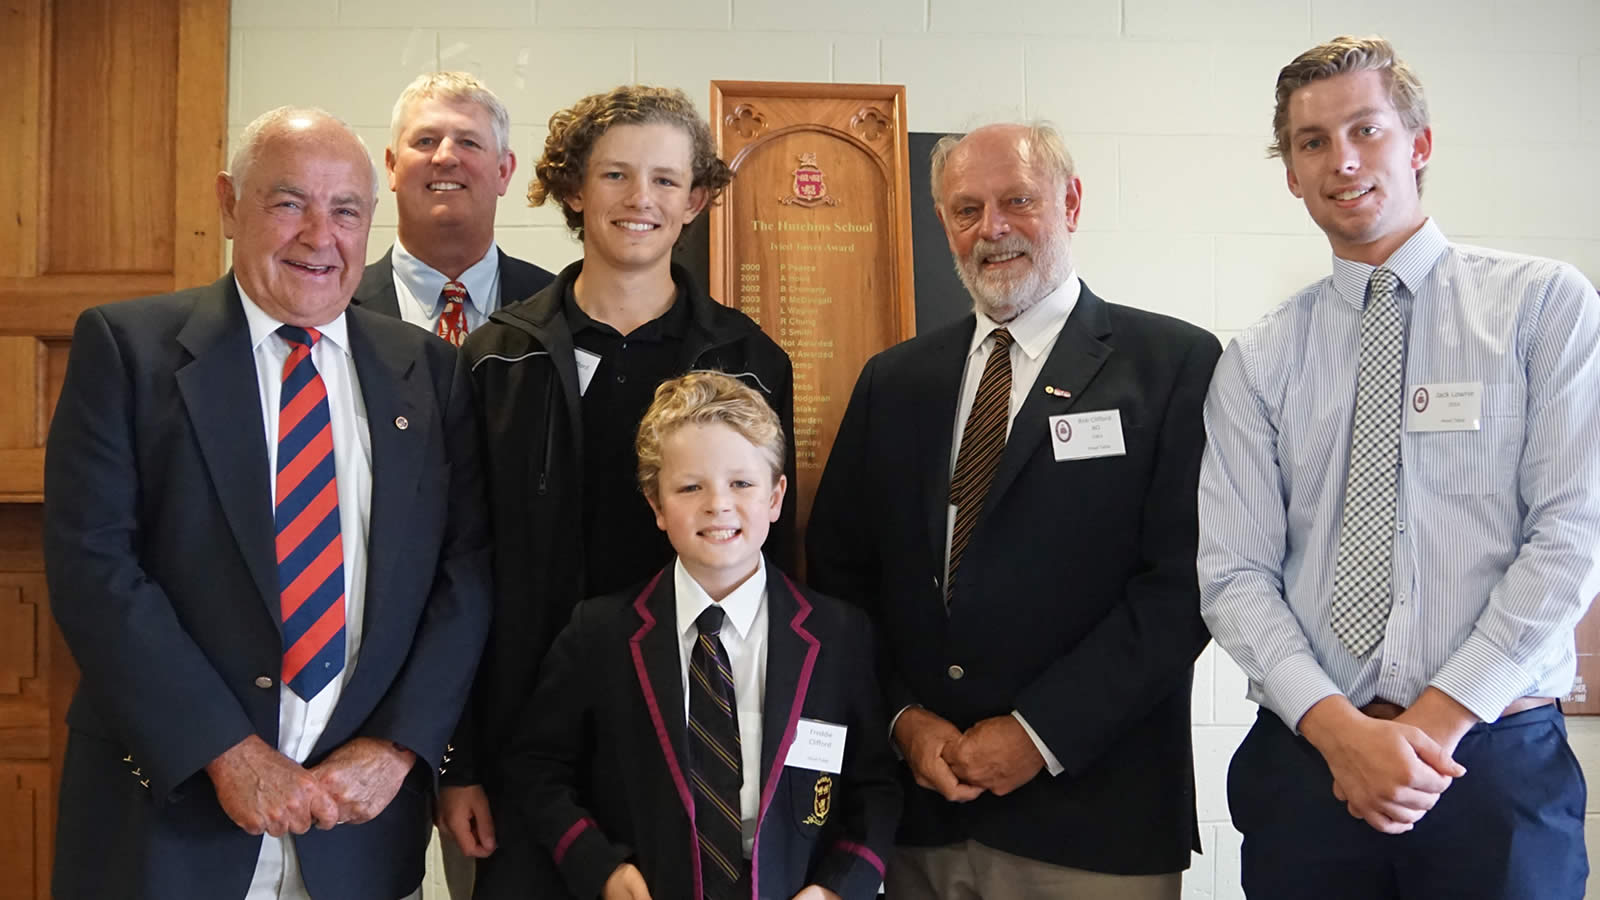 Roger French, Craig Clifford ('84), Joe Clifford (Year 9), Frederick Clifford (Year 4), Robert Clifford ('61) and Jack Lowrie ('14)